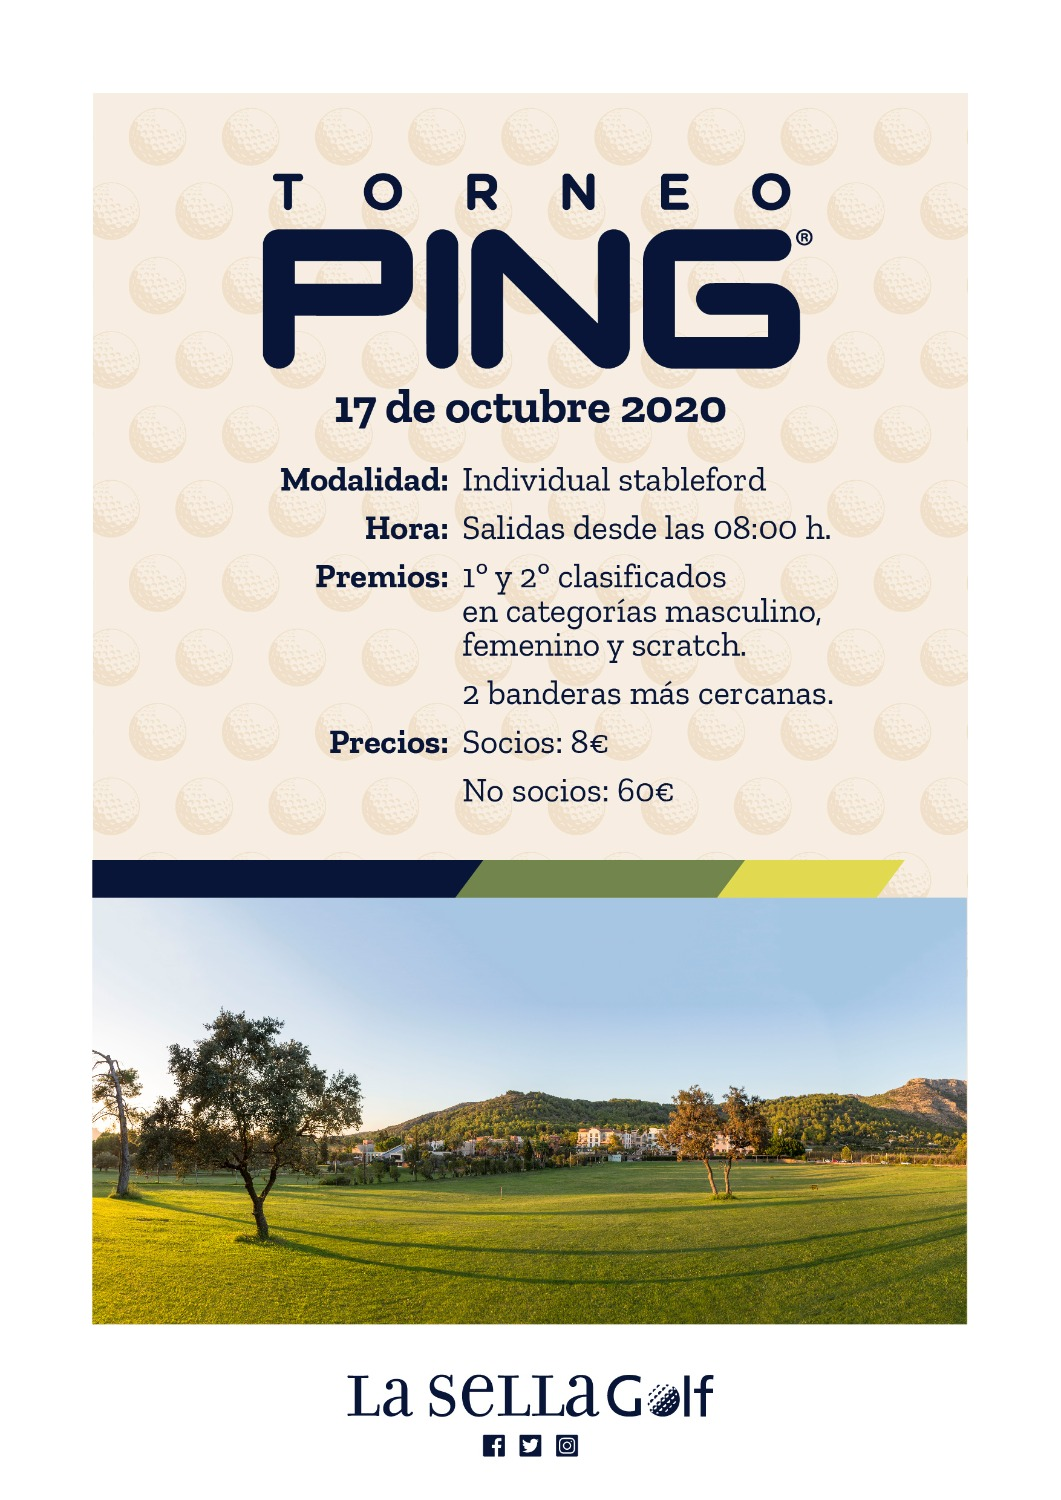 TORNEO PING